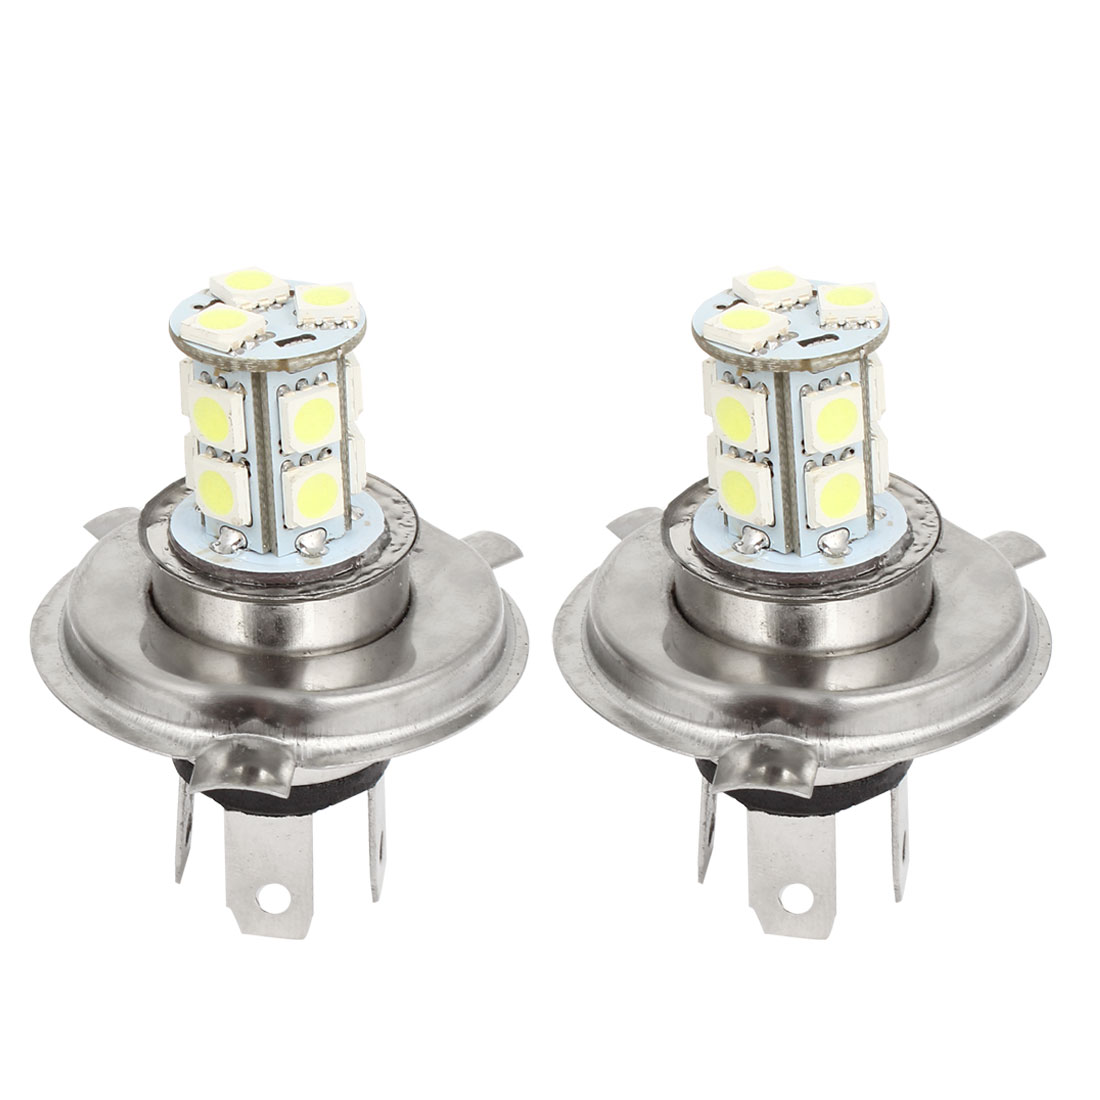 2 Pcs H4 12V 5050 SMD 13 LED Car Head Light Lamp Bulb DC 12V White